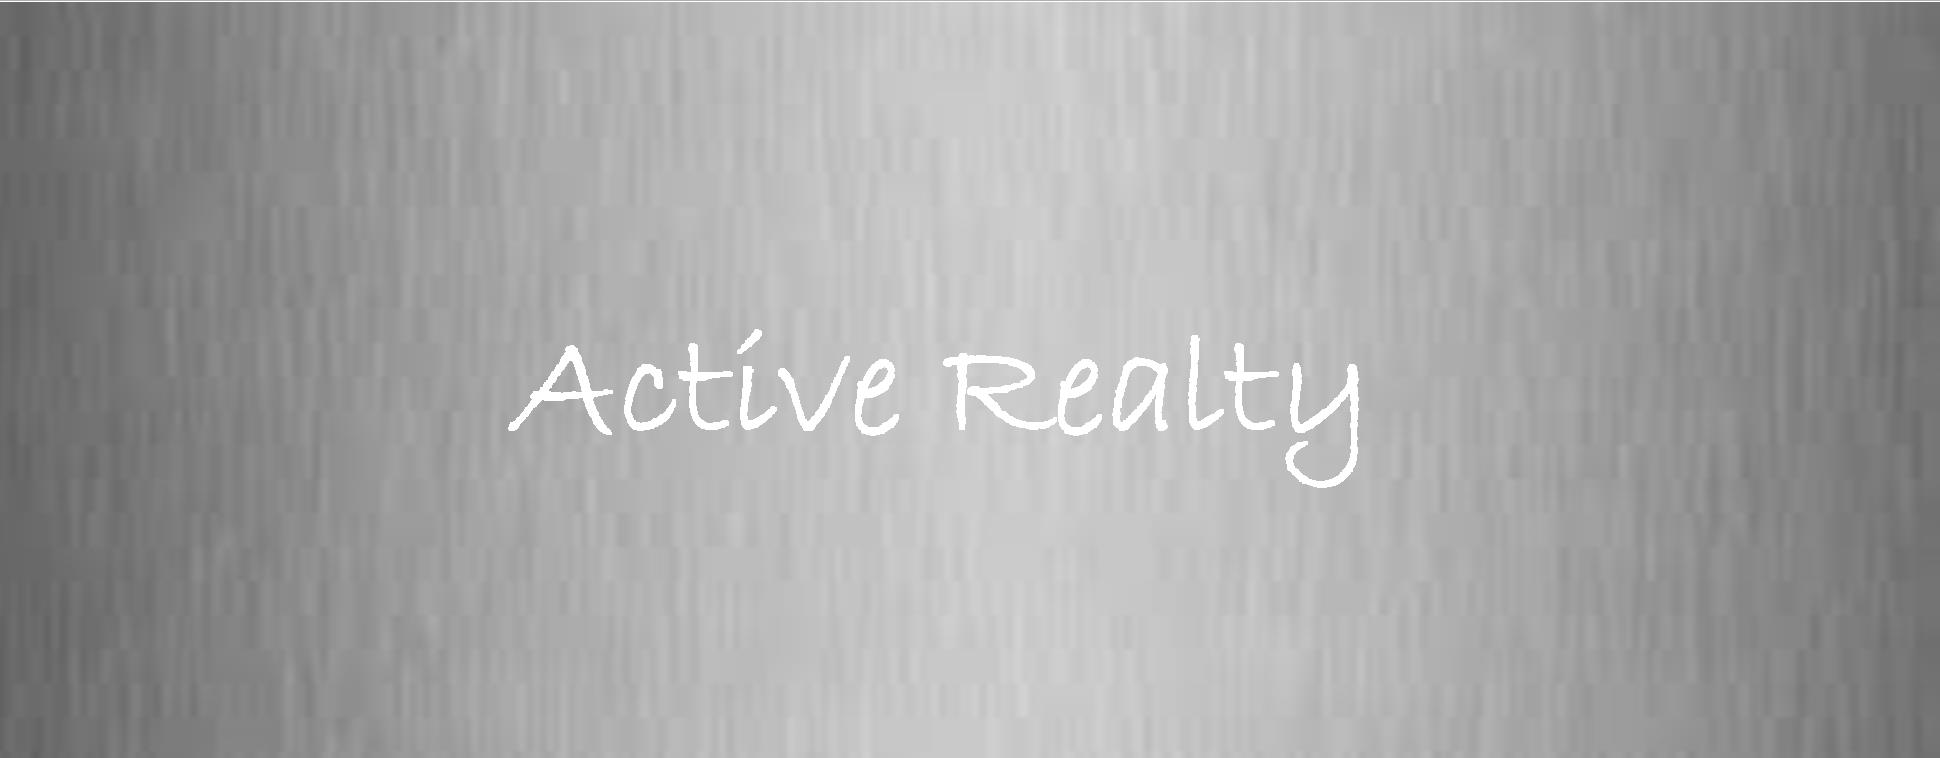 Active Realty.jpg